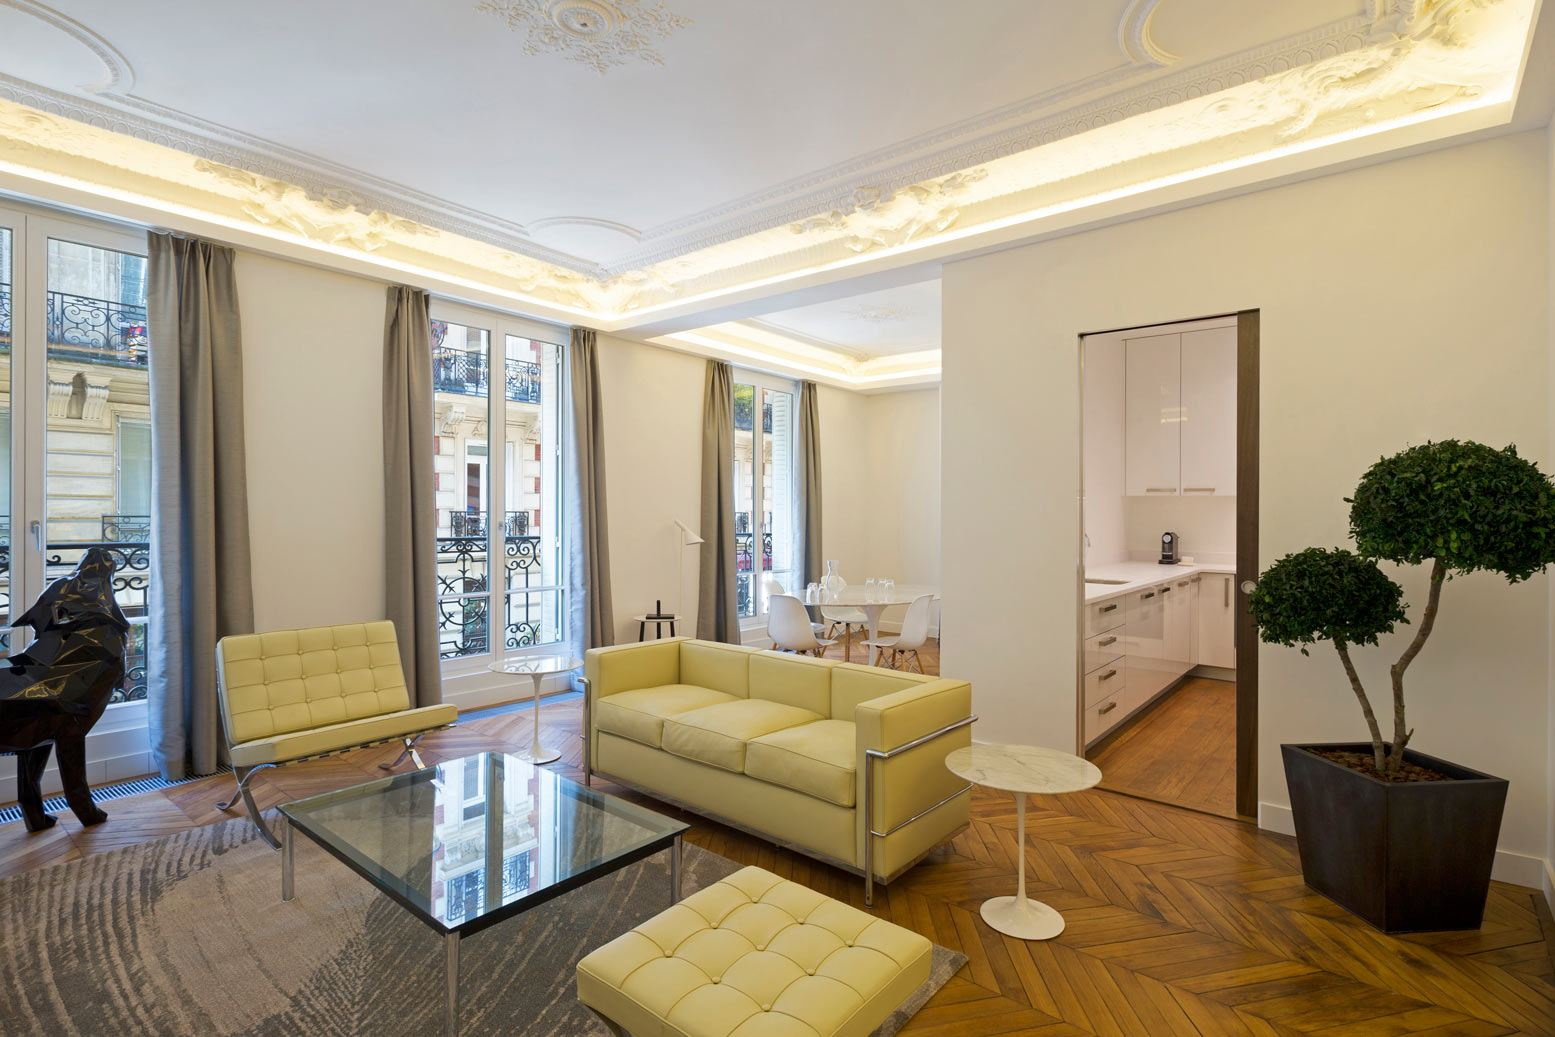 sales property at Peid-à-terre for sale in Paris 8 - Triangle d'Or